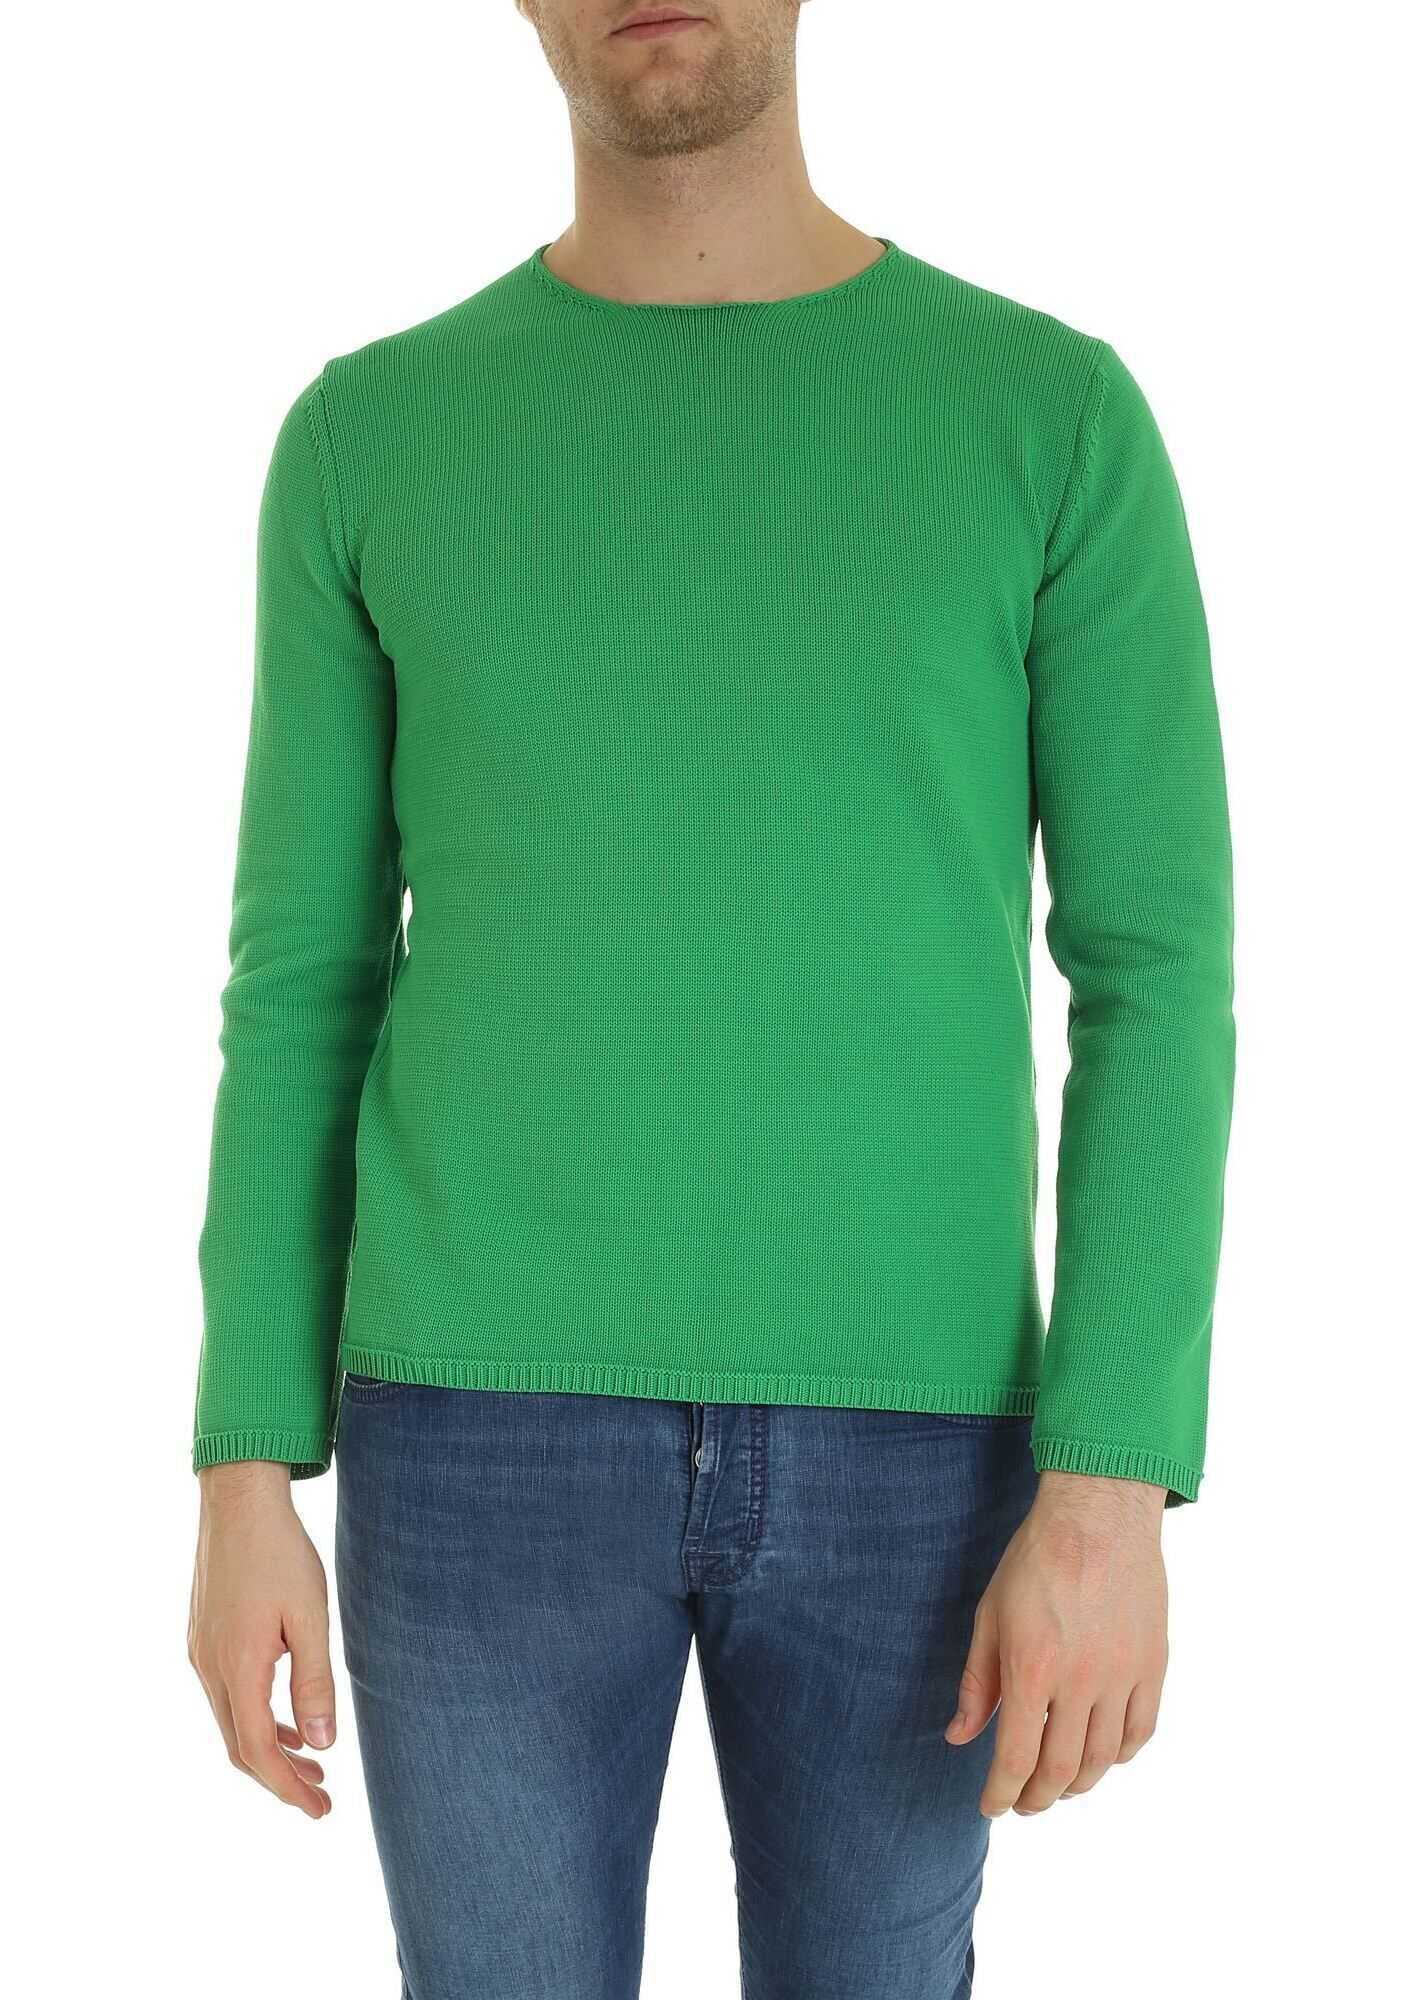 Comme des Garçons Pullover In Green With Raw Cut Neckline Green imagine